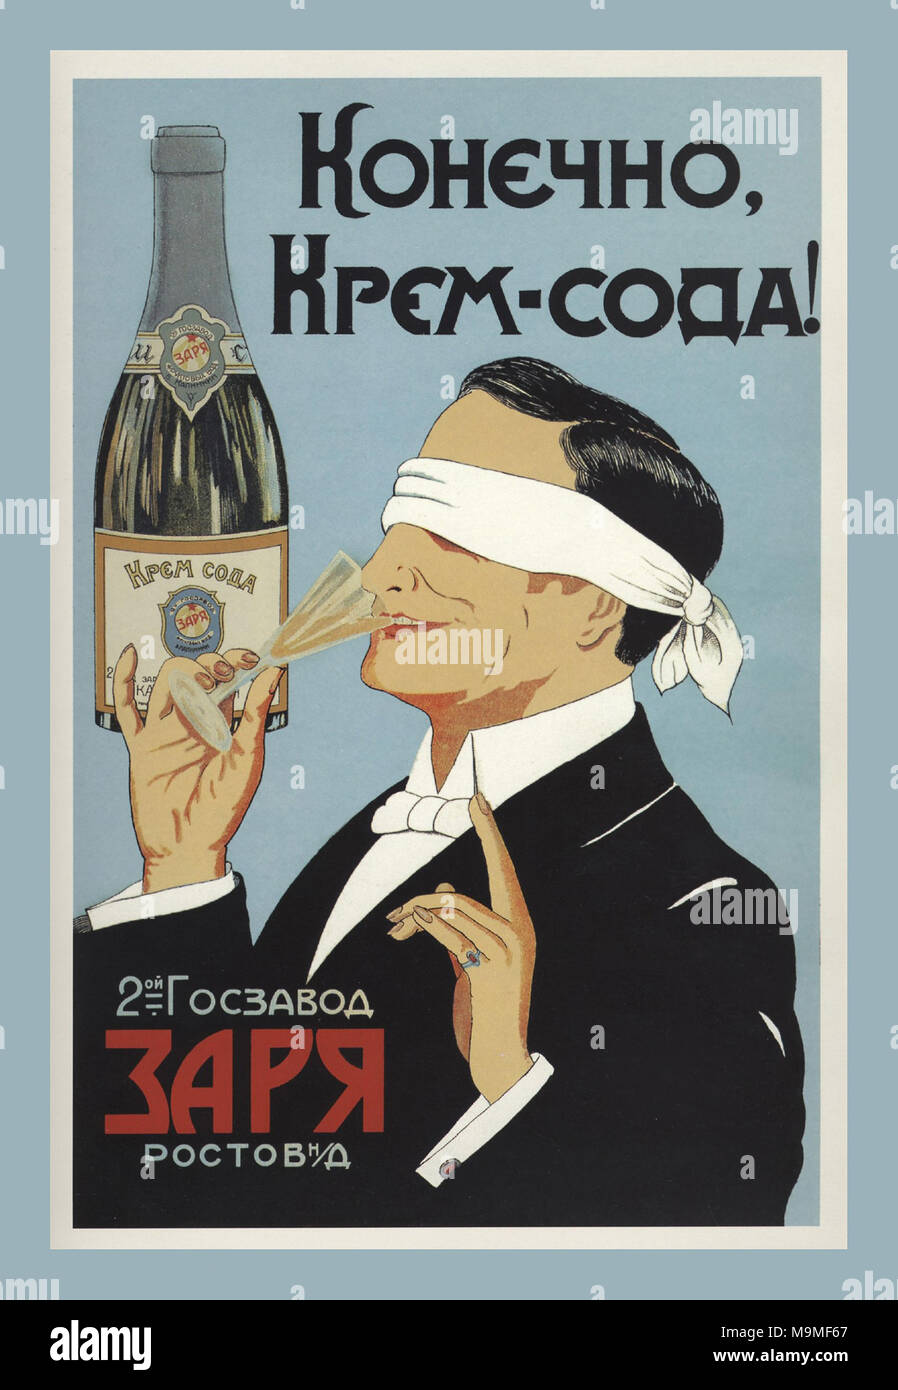 Vintage Soviet Drinks Poster Advertising 1920s CCCP Russian Alcohol Of Sparkling Soda Cream Wine Champagne Style Tasted In